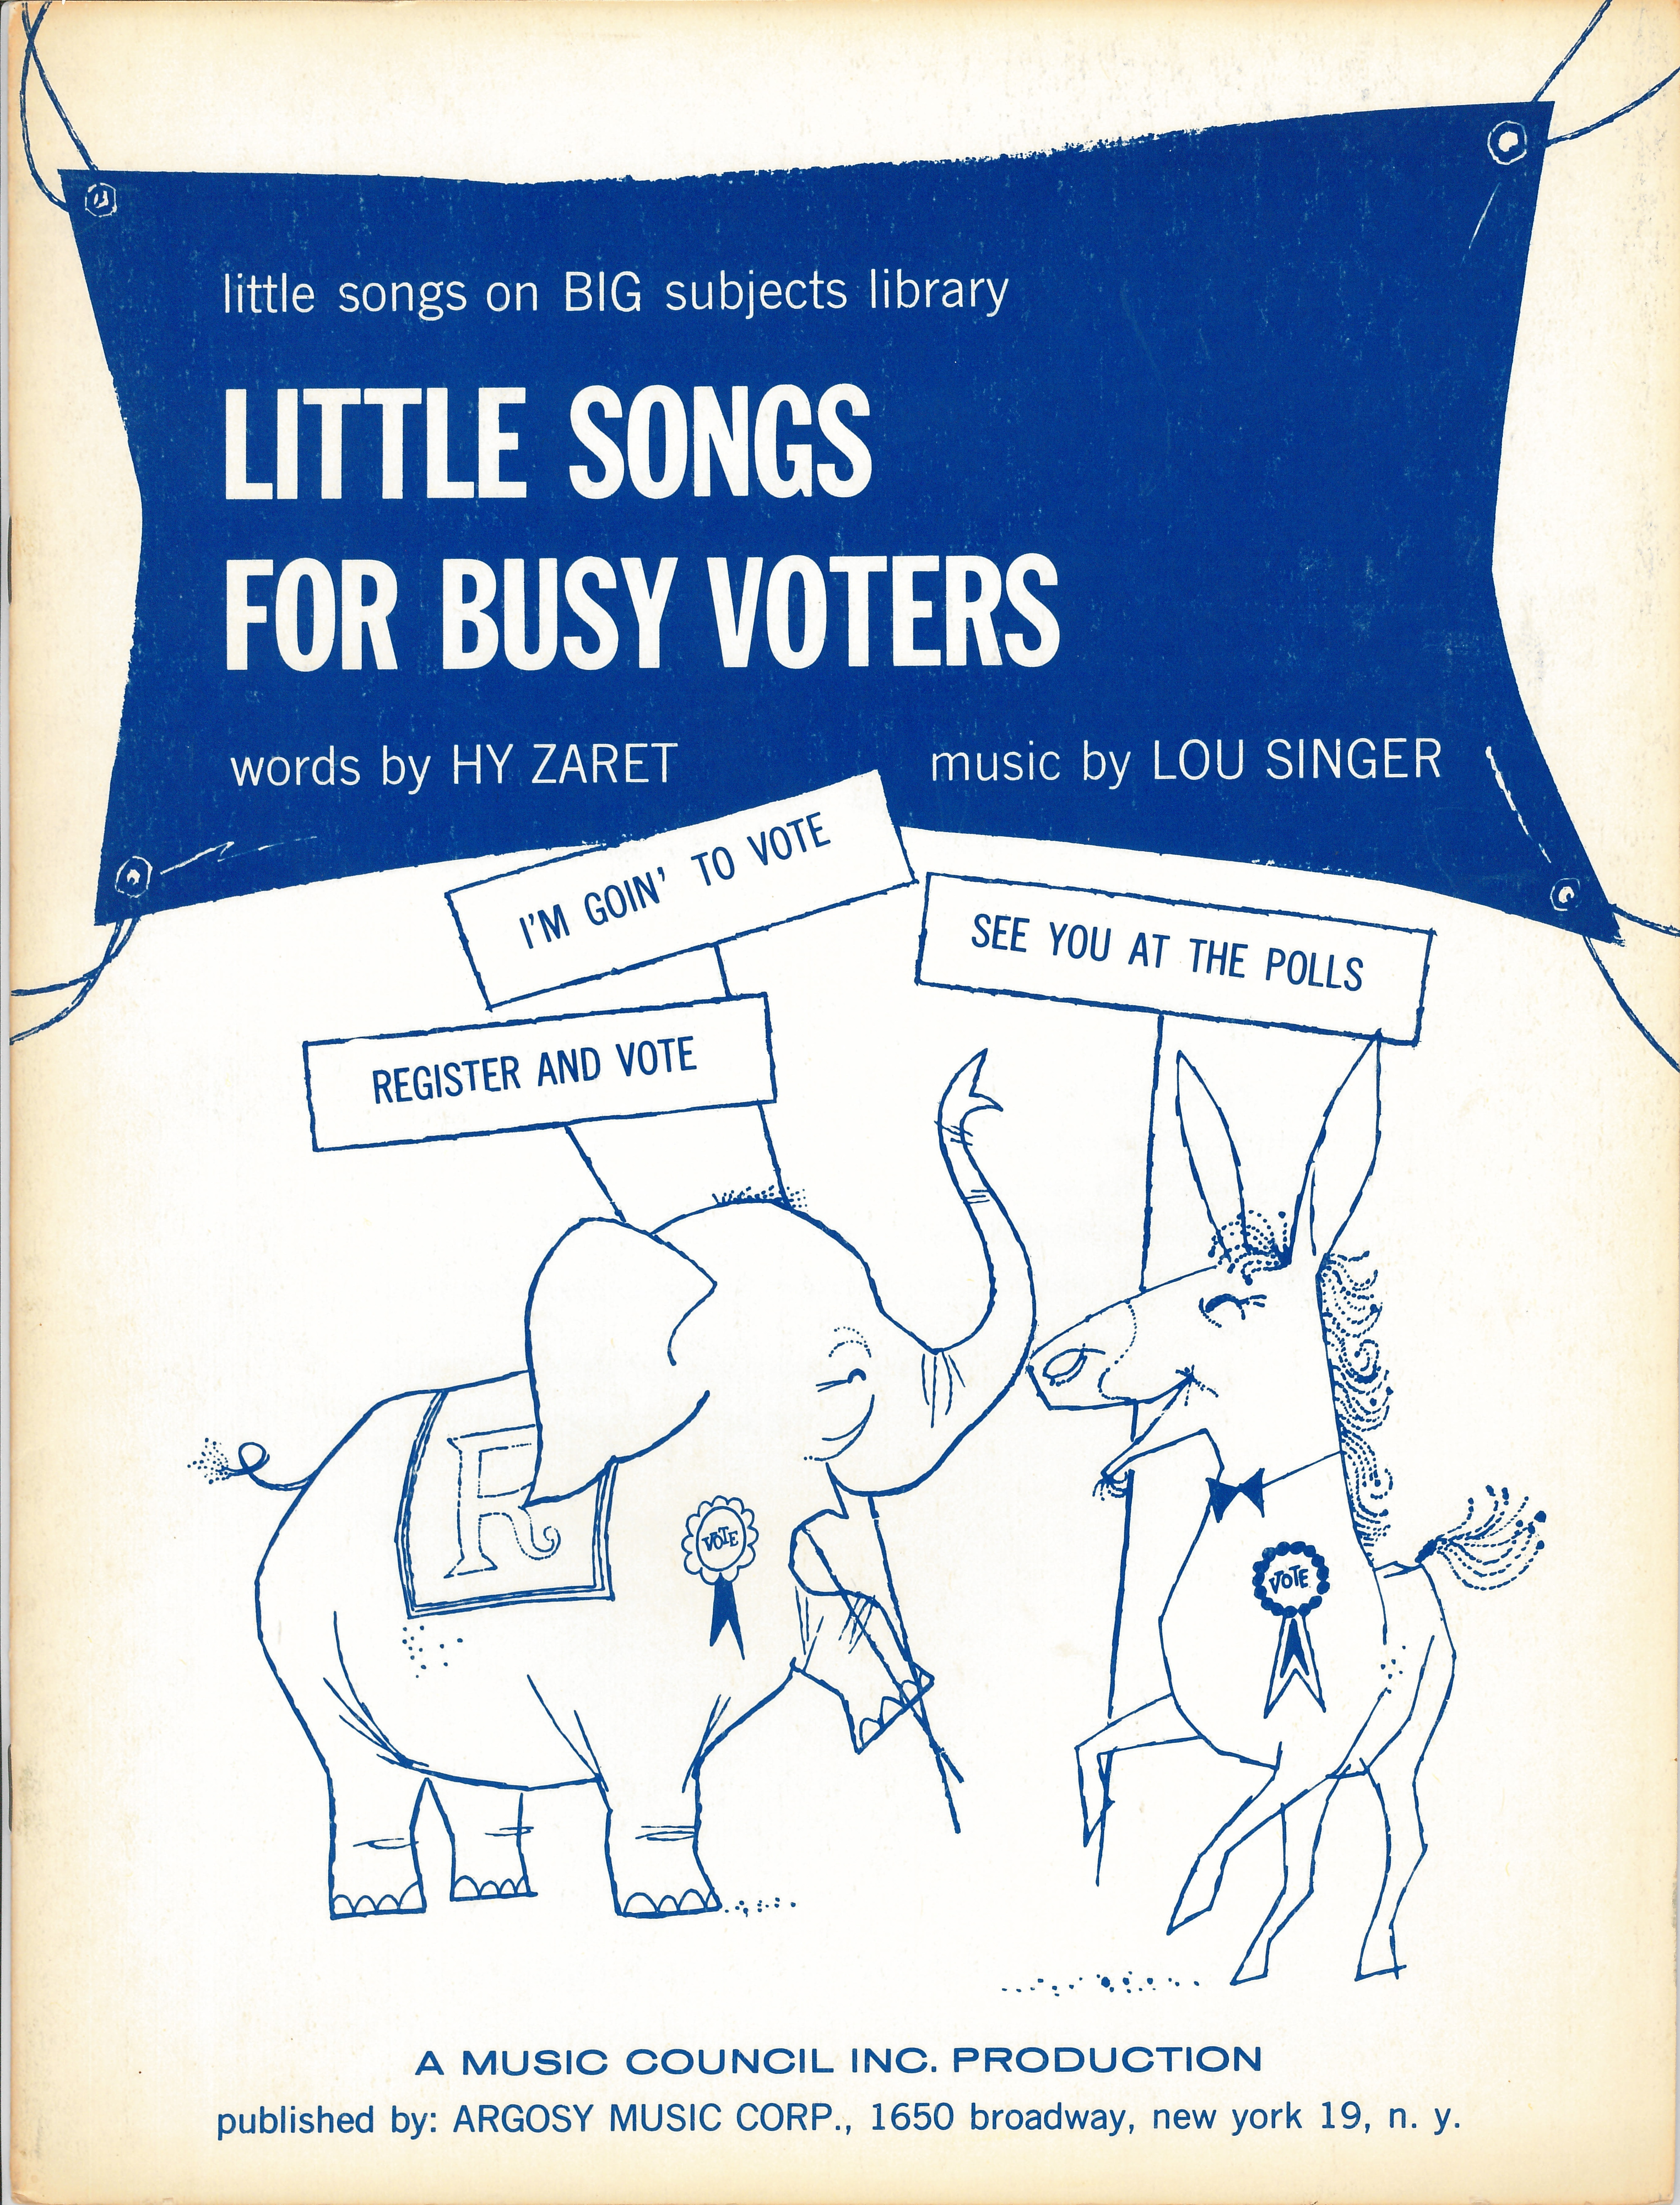 Little Songs for Busy Voters - Hy Zaret